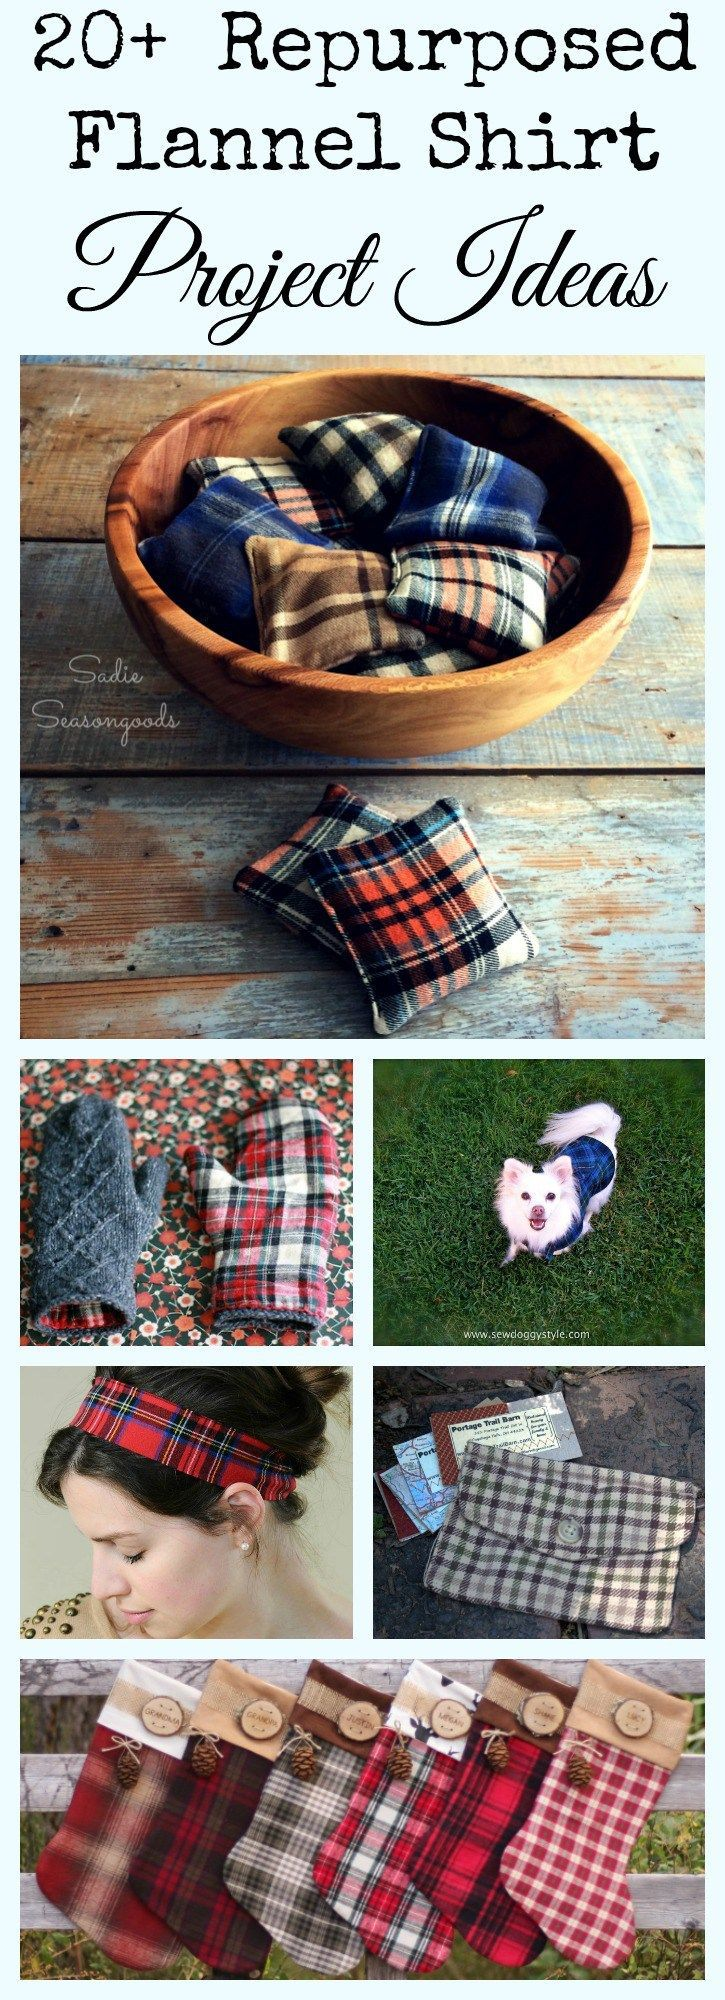 Repurposed and Upcycled Flannel Shirt DIY craft project ideas for autumn, fall, and winter holiday compiled by Sadie Seasongoods / www.sadieseasongoods.com